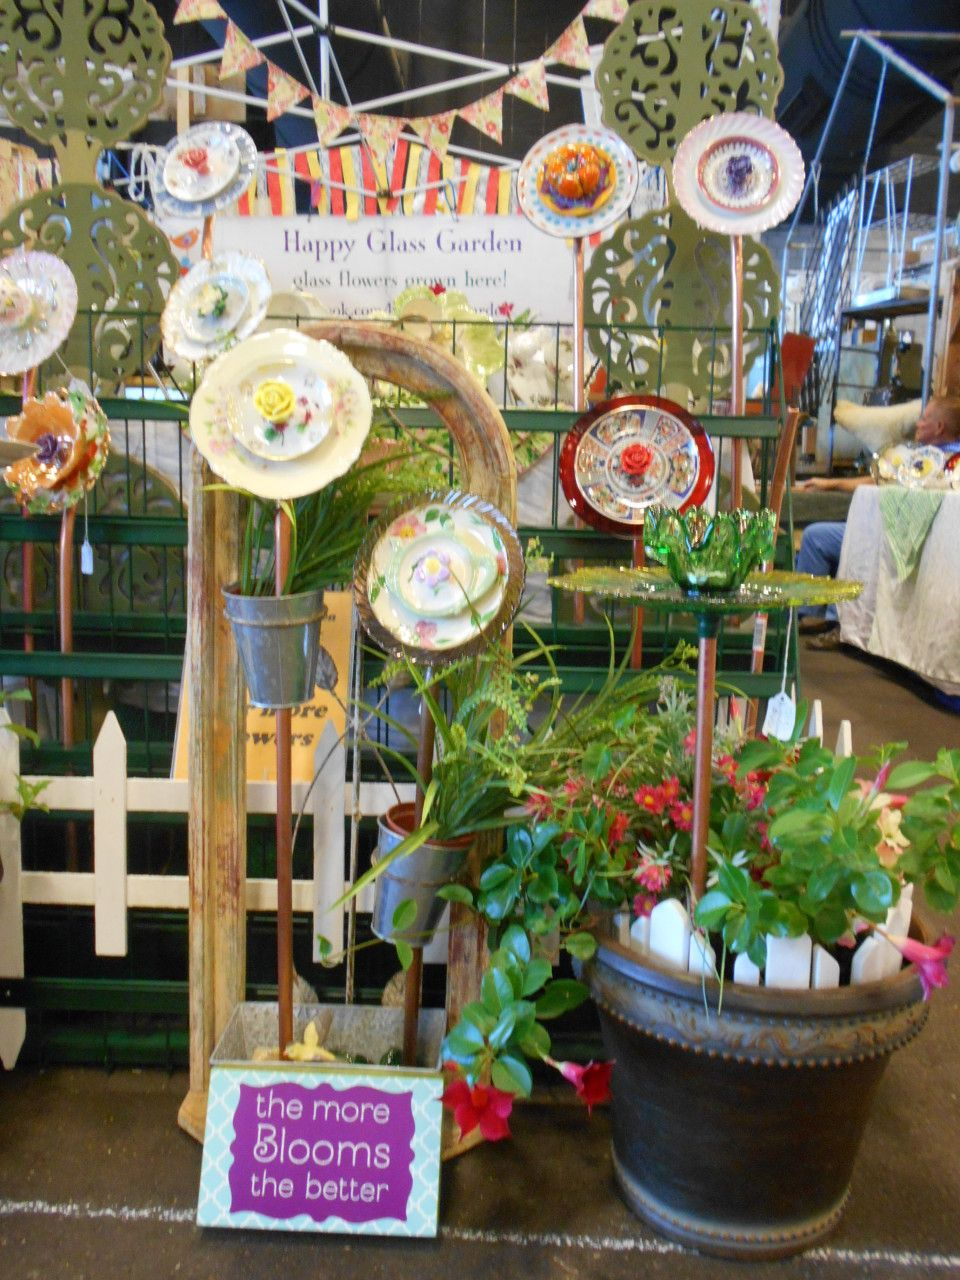 The perfect garden! Available from Happy Glass Garden on http://www ...